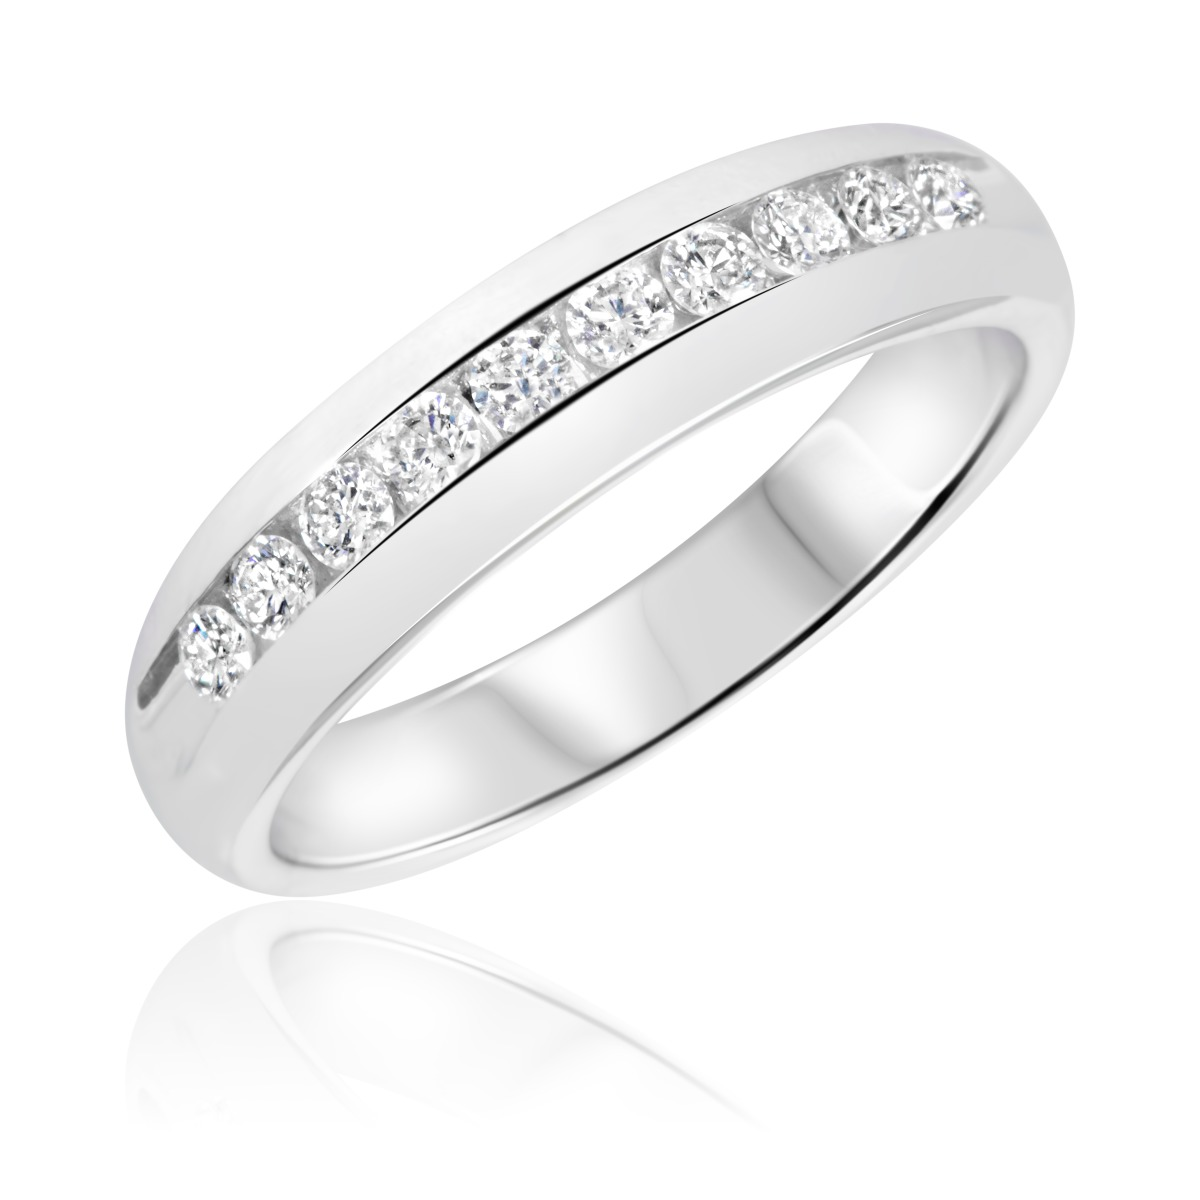 1/2 Carat T.W. Diamond Men's Wedding Ring 14K White Gold